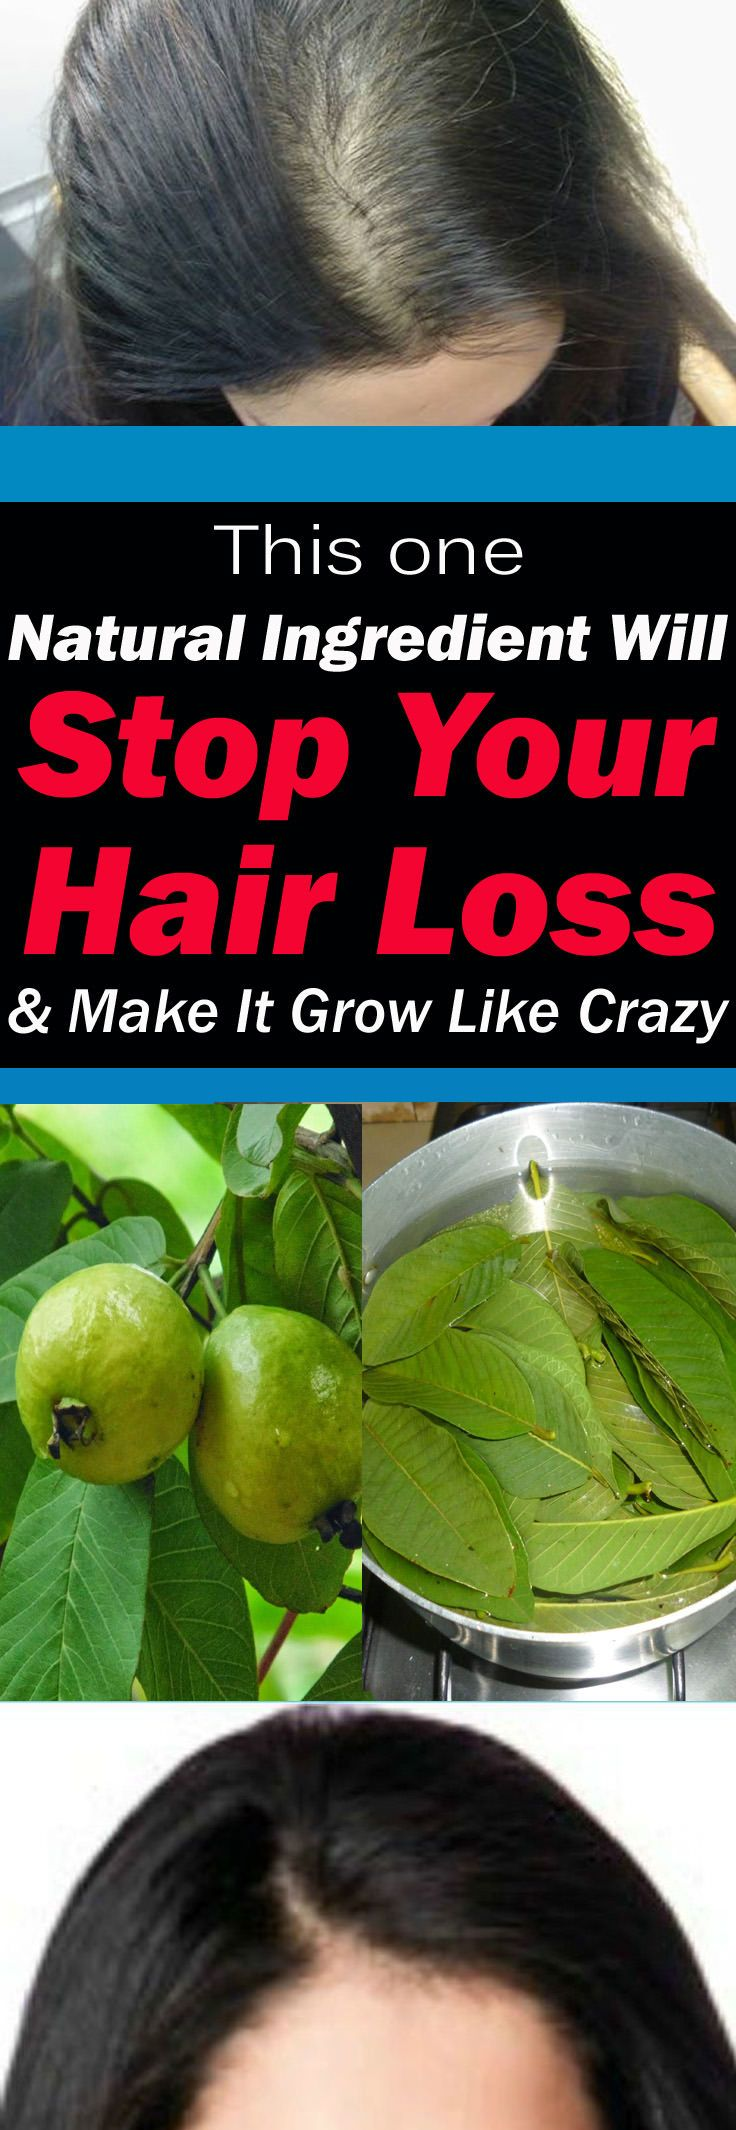 This One Natural Ingredient Will Stop Your Hair Loss And Make Them Grow Like Crazy